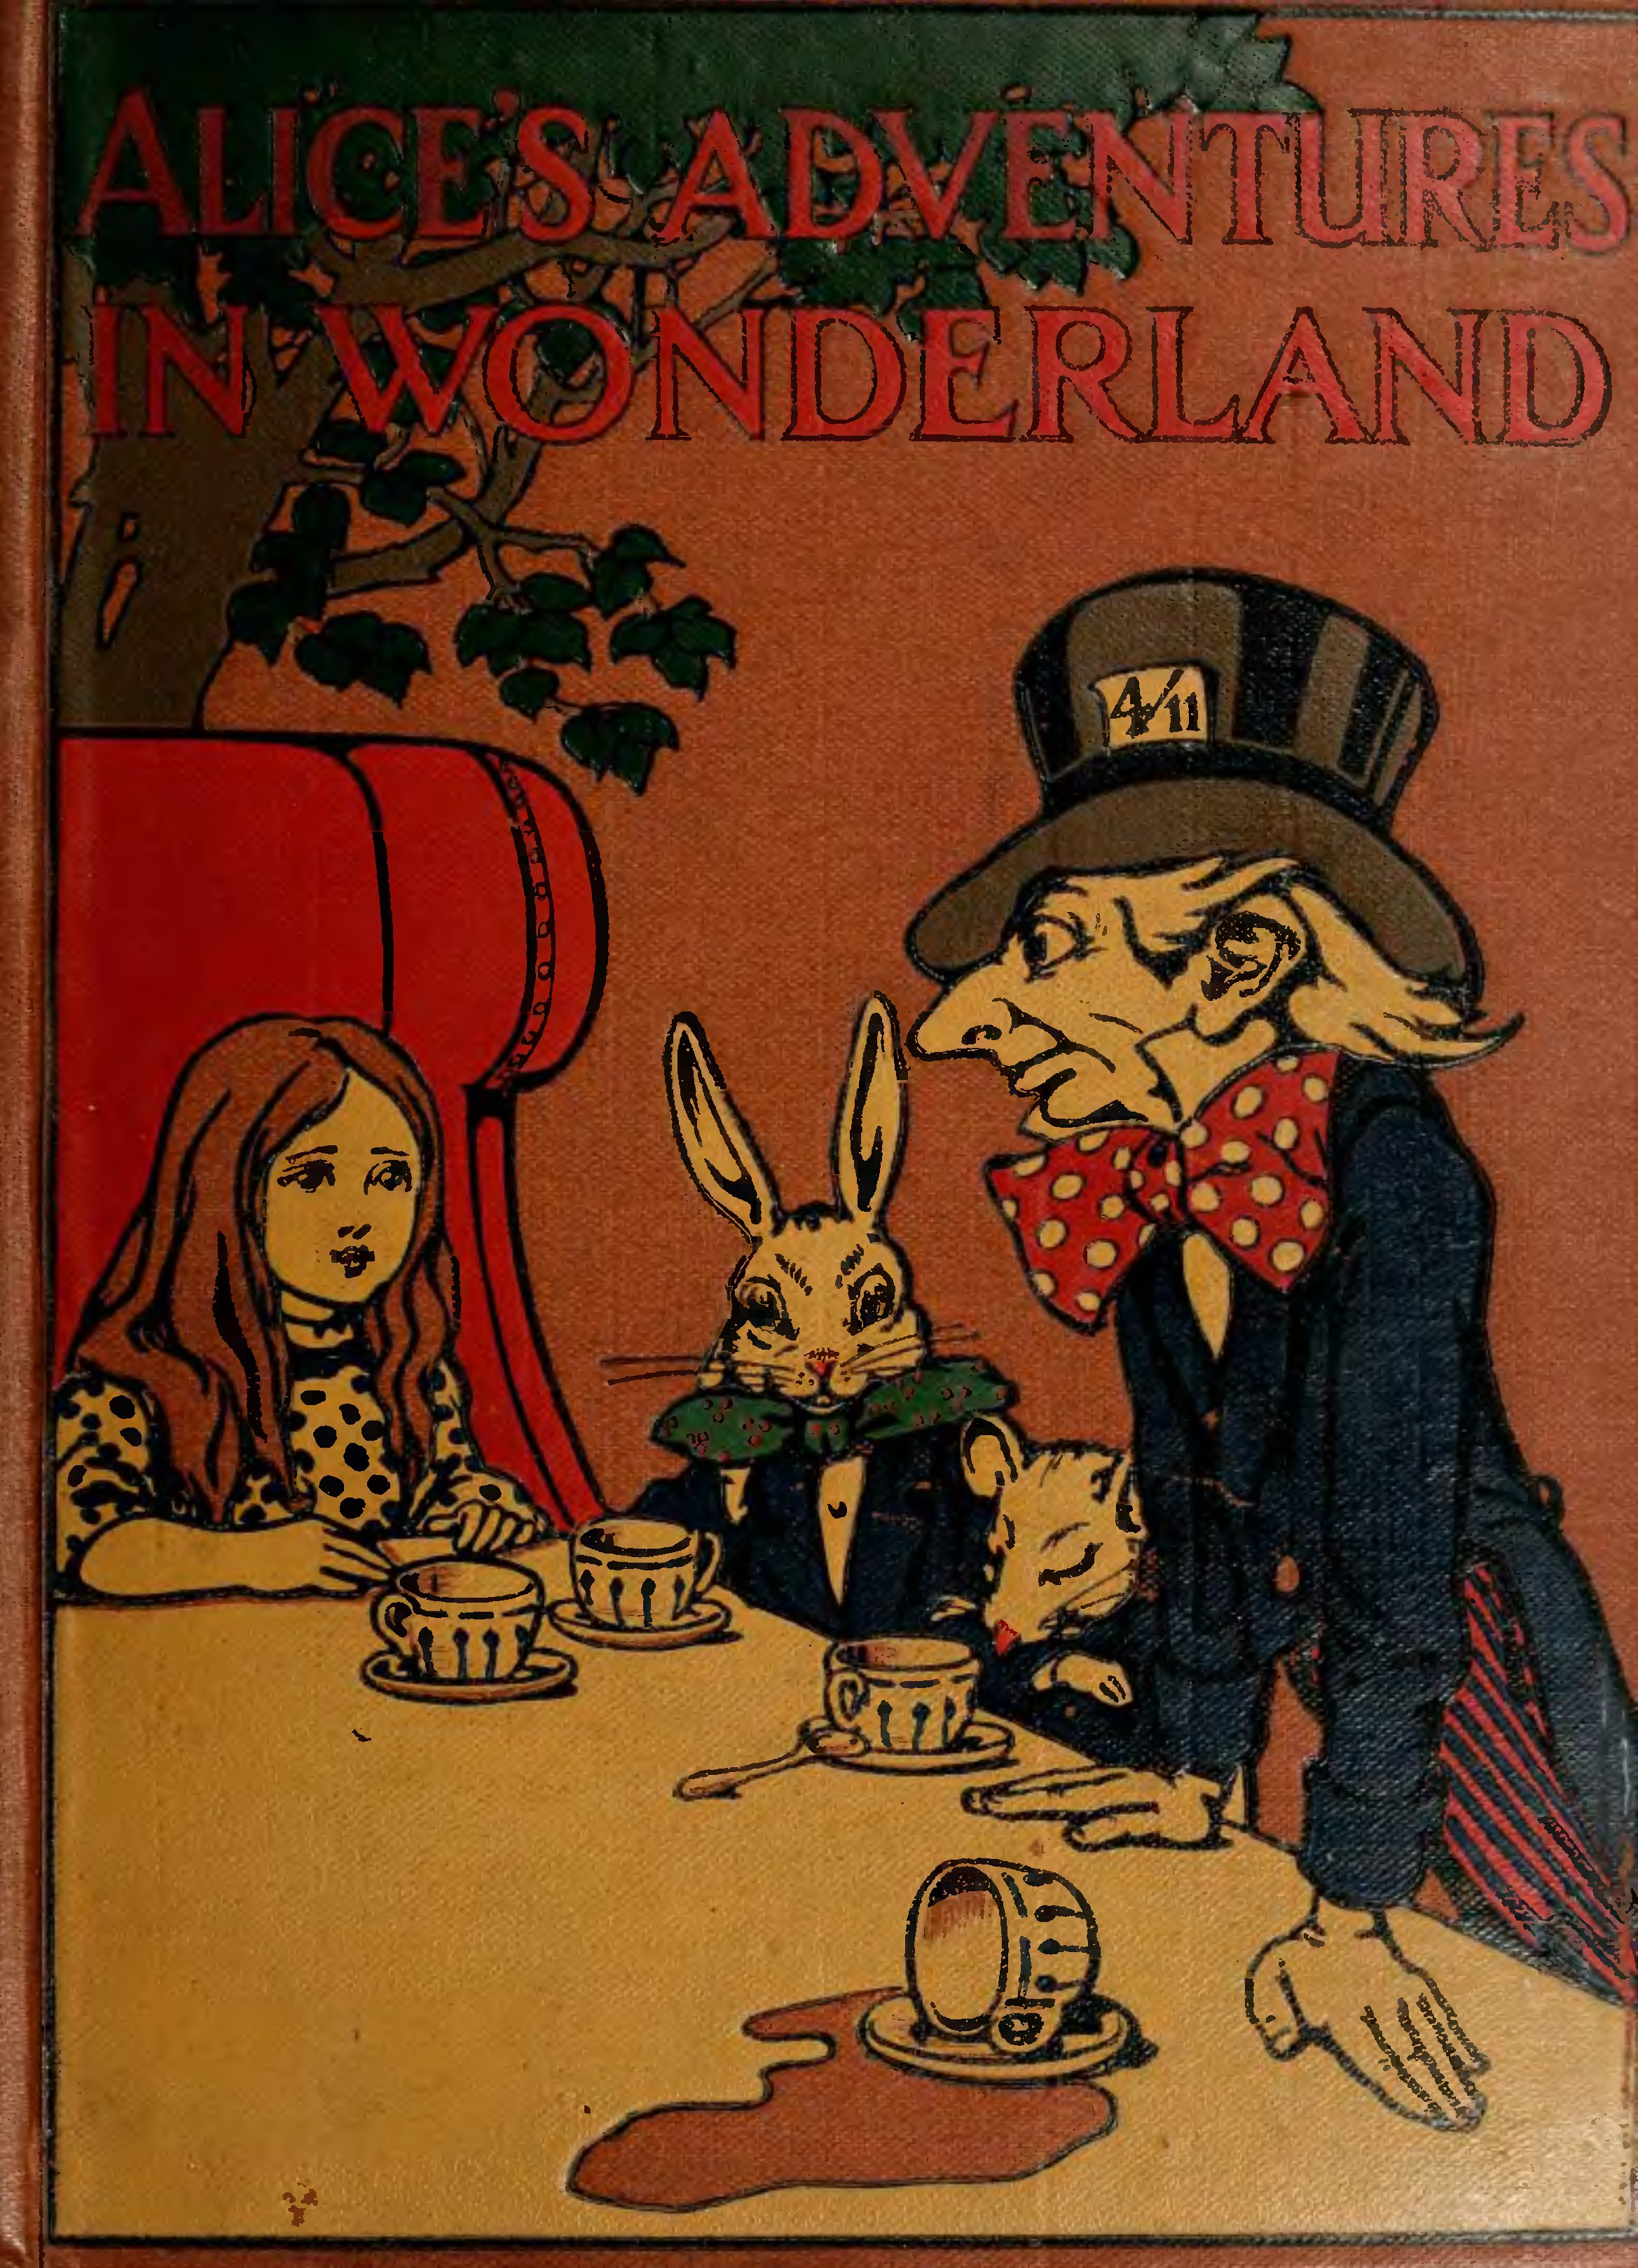 alice s adventures in wonderland and alice Alice's adventures in wonderland has 121695 ratings and 6134 reviews manny  said: good gracious said alice, i do believe i'm inside a reviewshe.